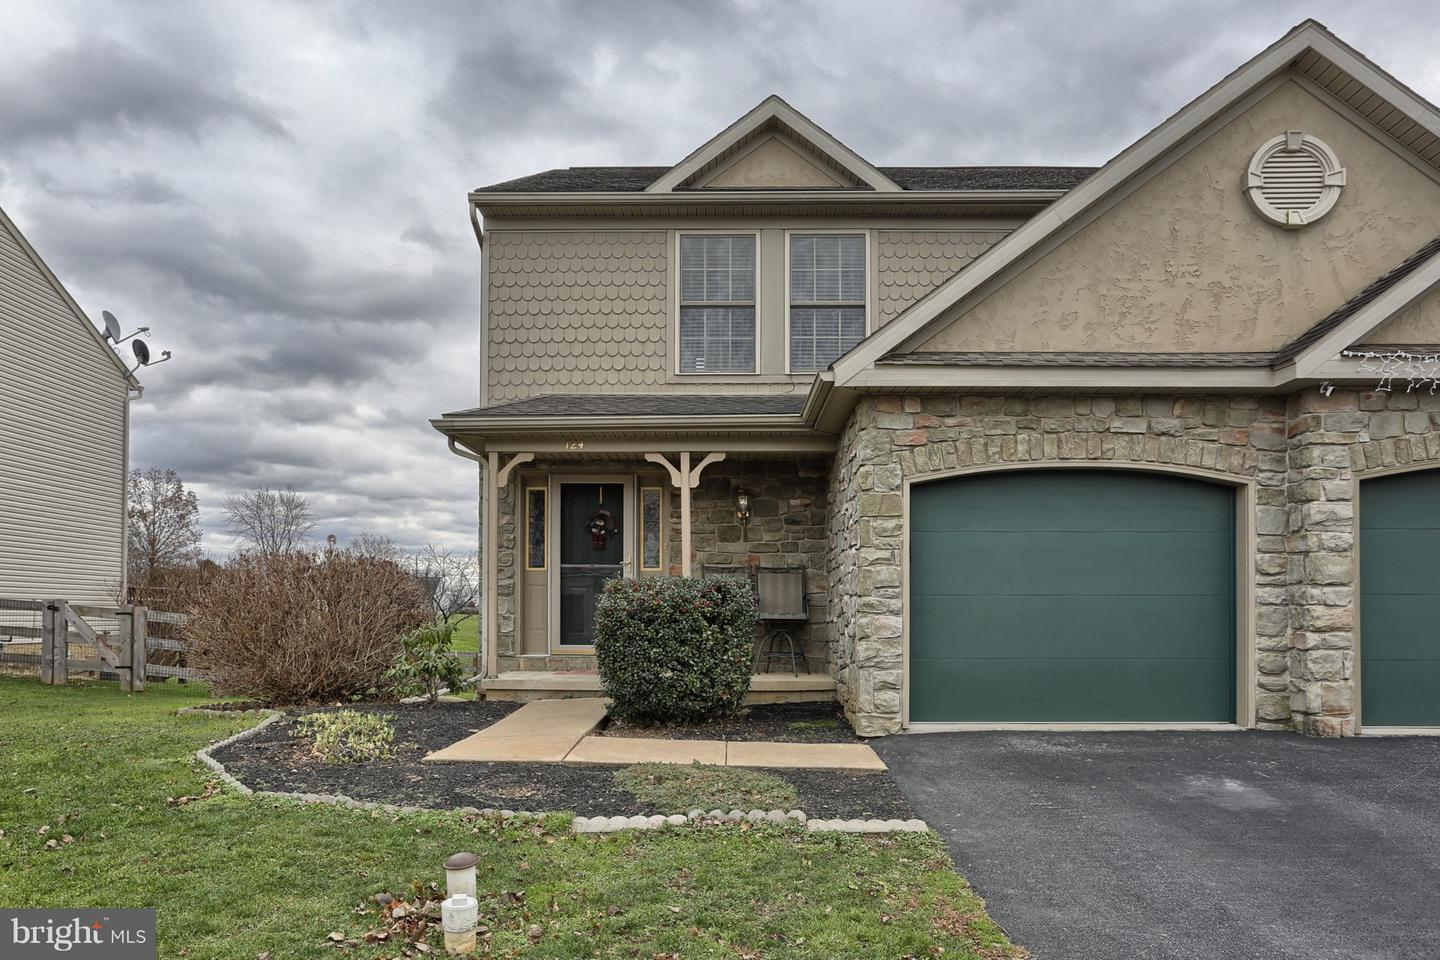 Conestoga Valley School District Homes For Sale In Pa Ziprealty